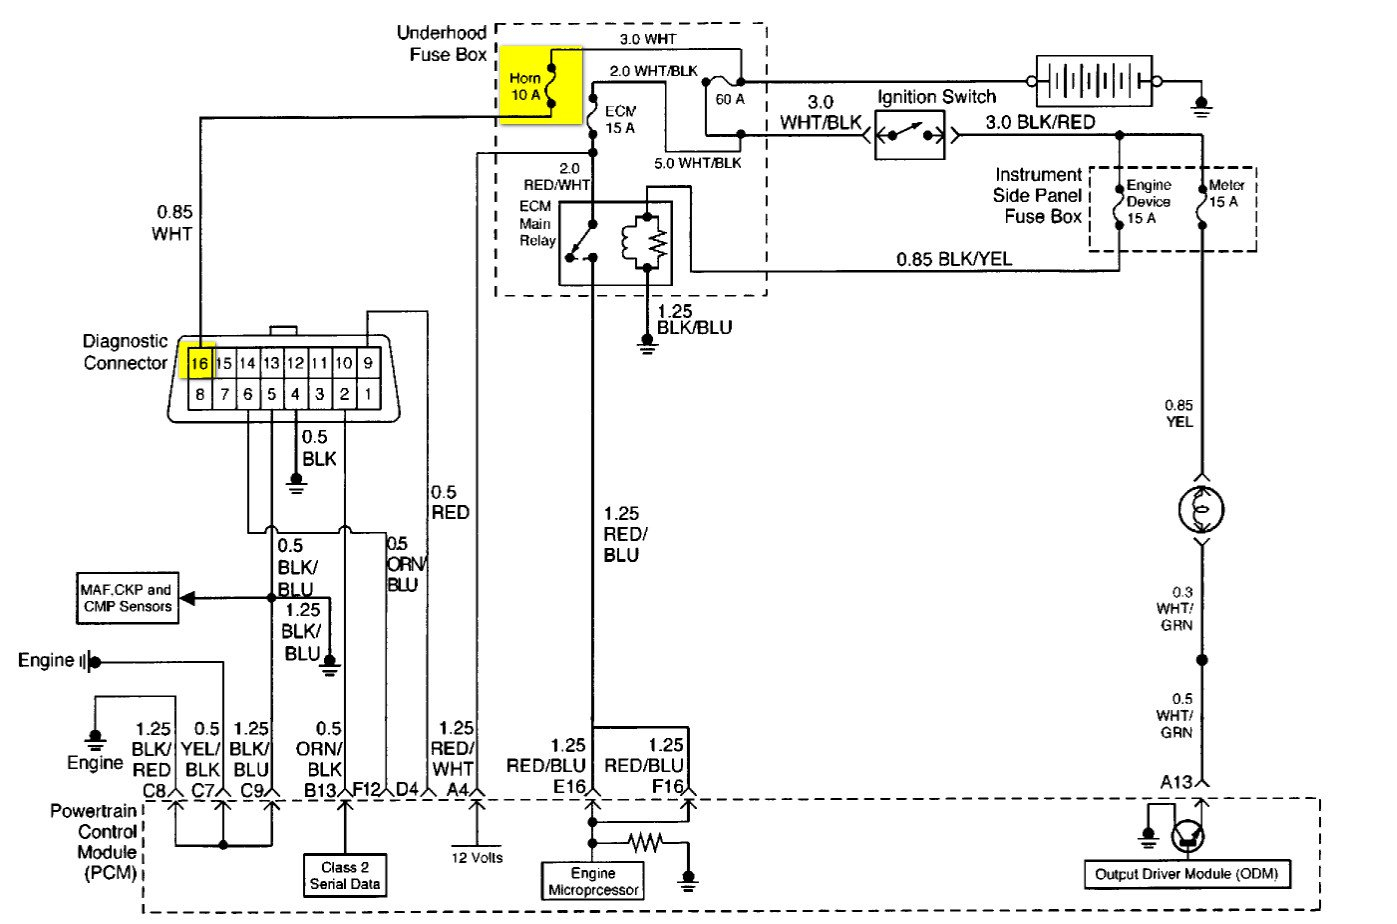 Audi Obd Wiring | Wiring Diagram - Submersible Well Pump Wiring Diagram